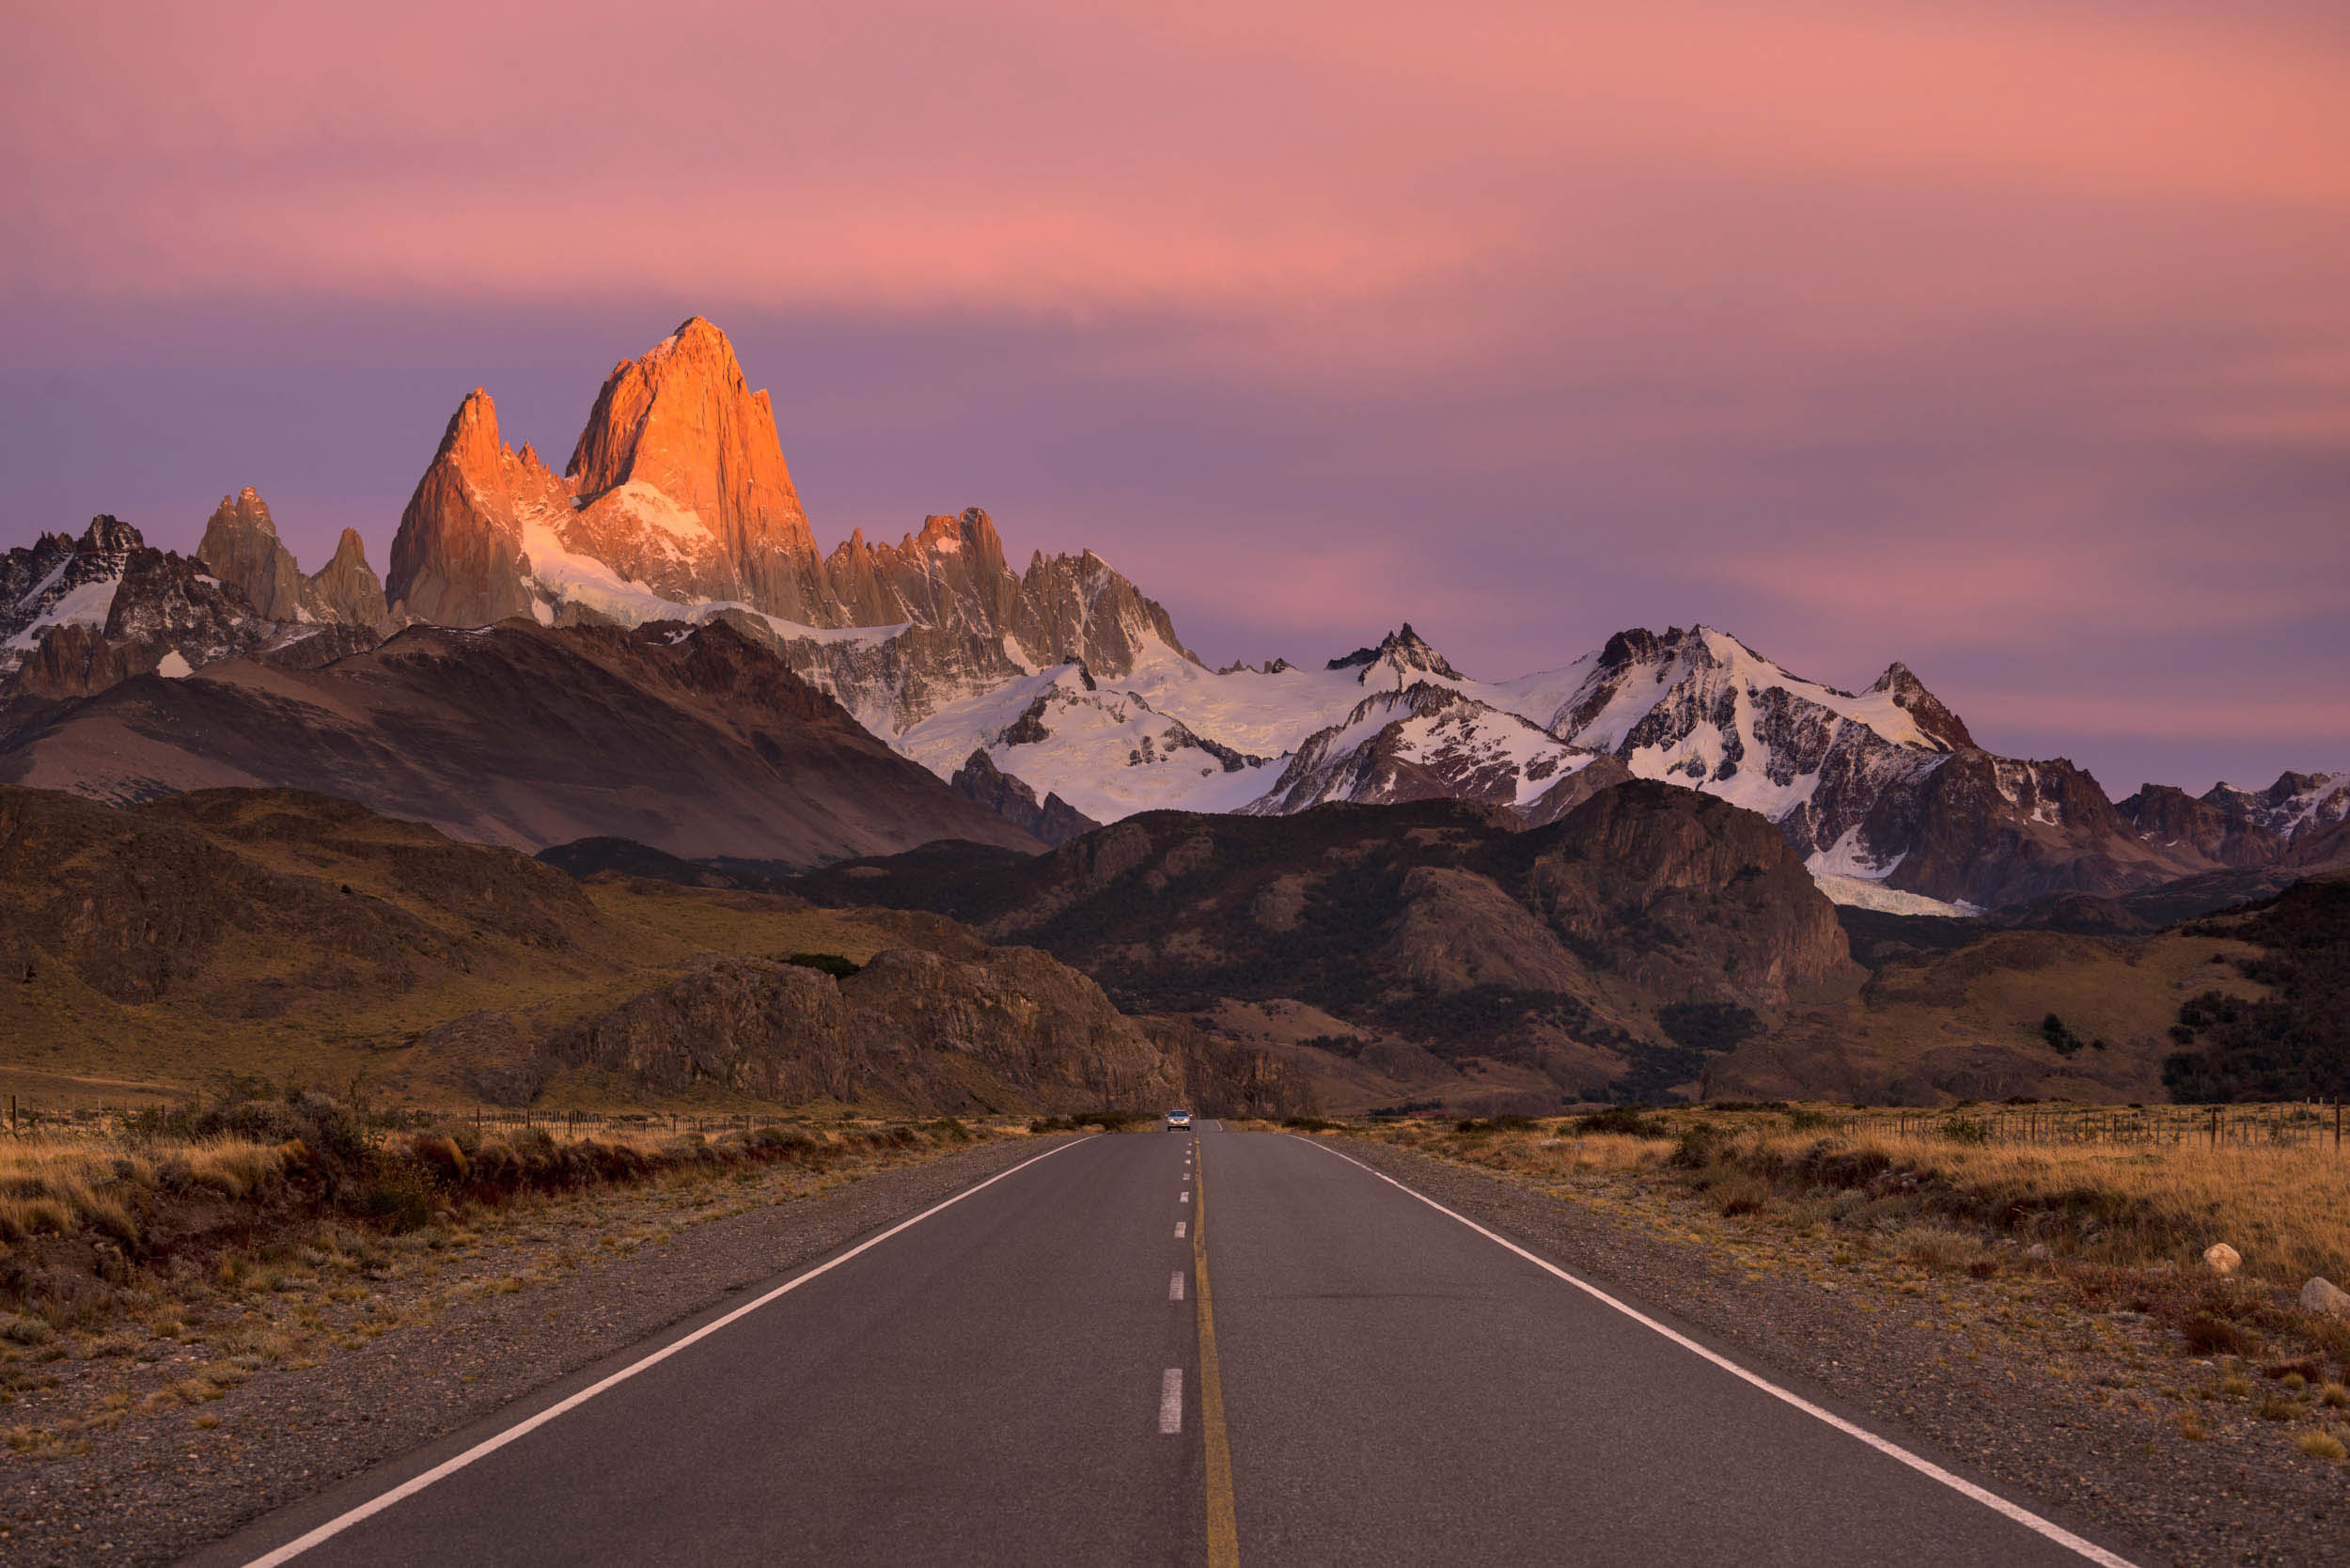 mountains-fitz-roy-range-peaks-sunrise-patagonia-argentina-photography-dawn